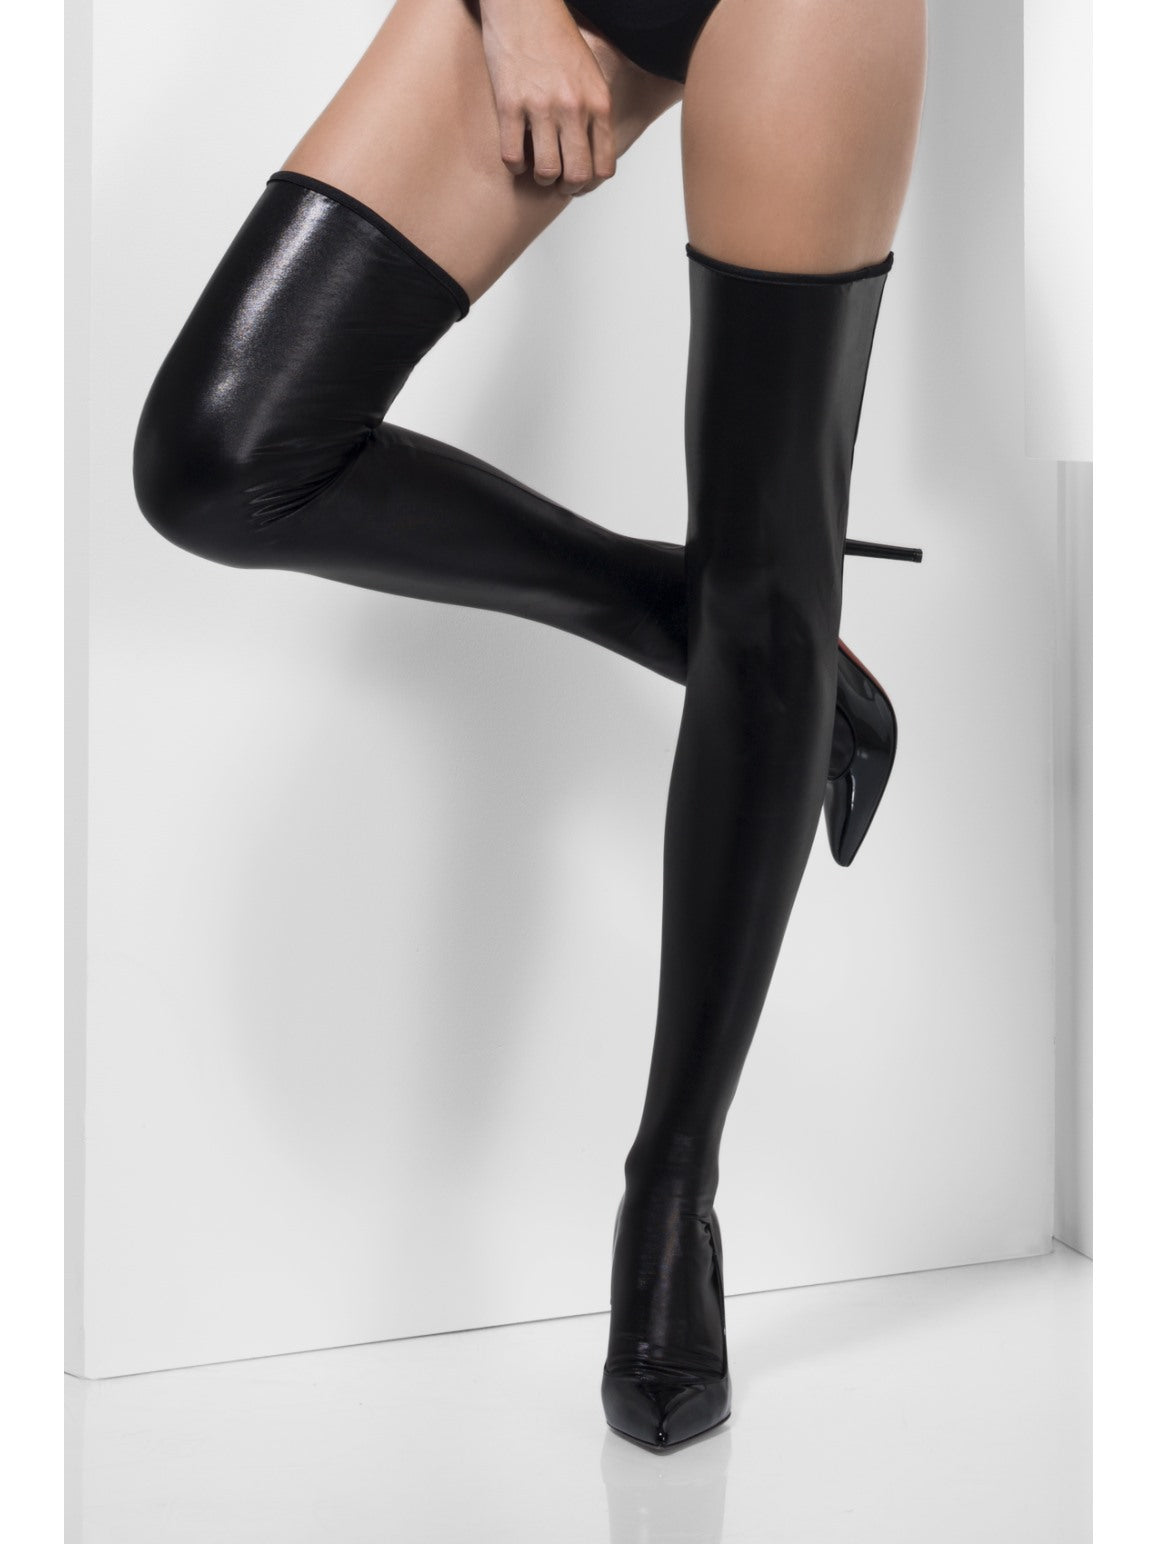 Black Wet Look Hold-Ups